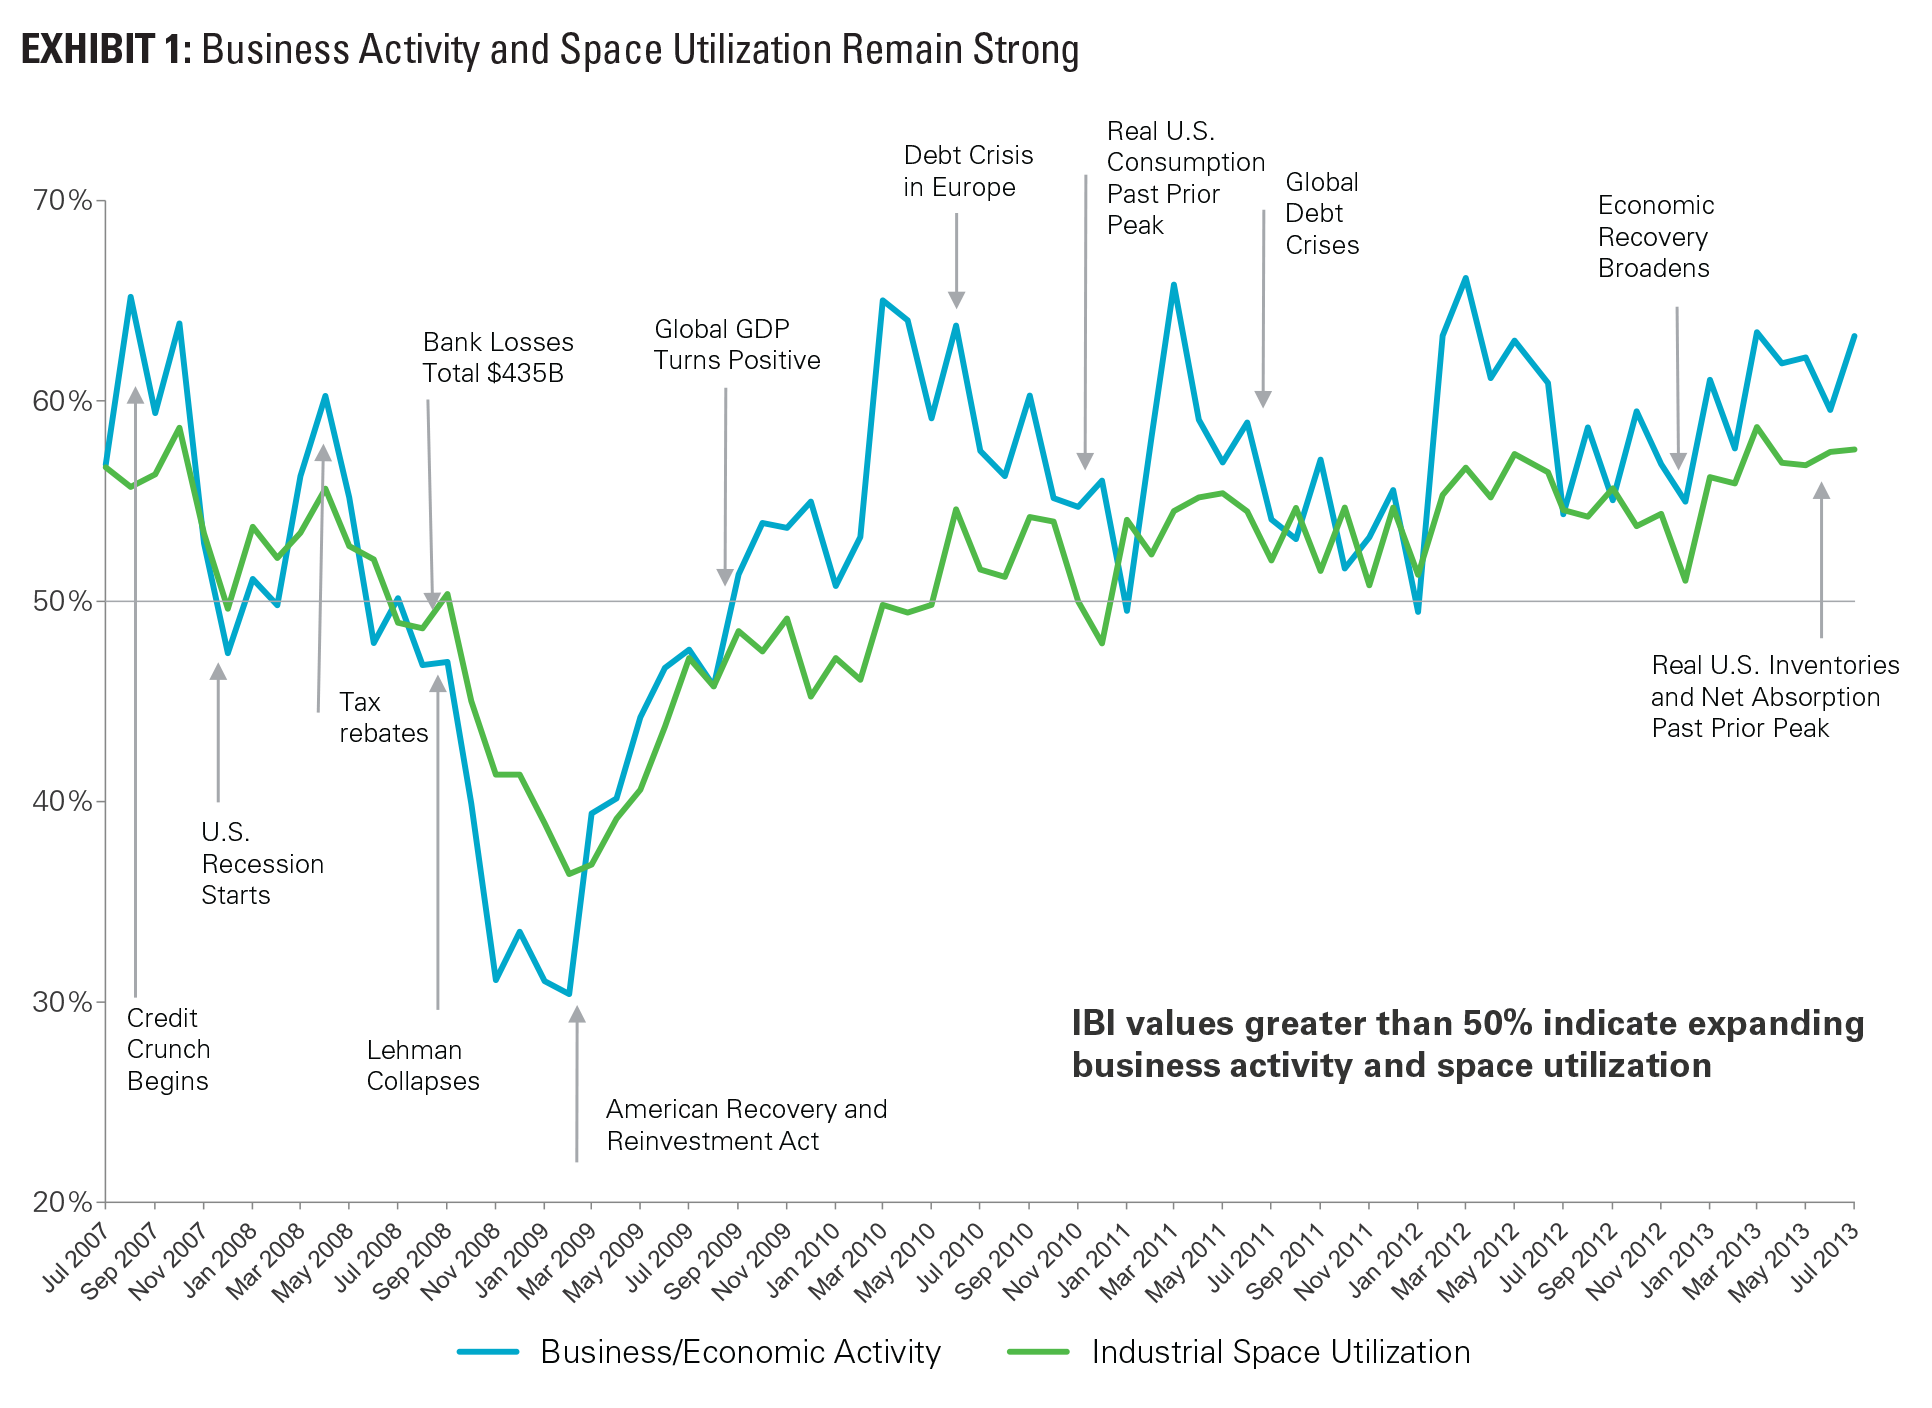 EXHIBIT 1: Business Activity and Space Utilization Remain Strong